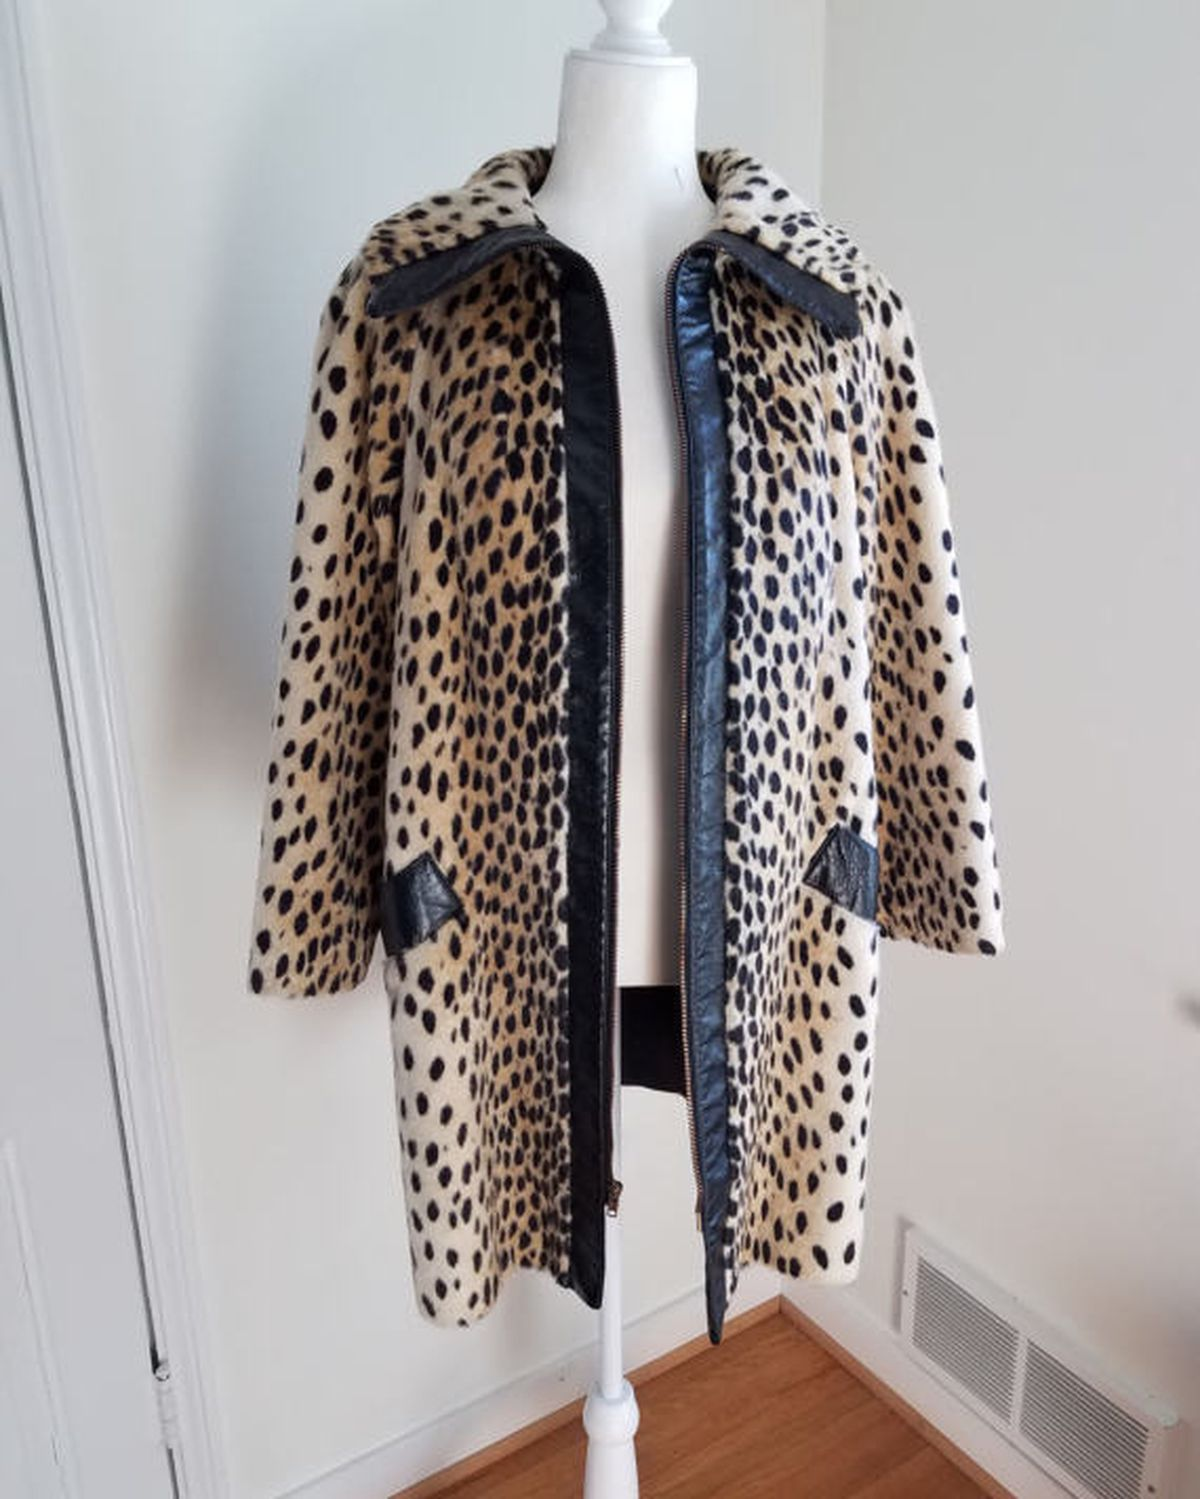 Where Can I Find a Sleek Leopard Coat That Doesn\'t Look Tacky? - Racked